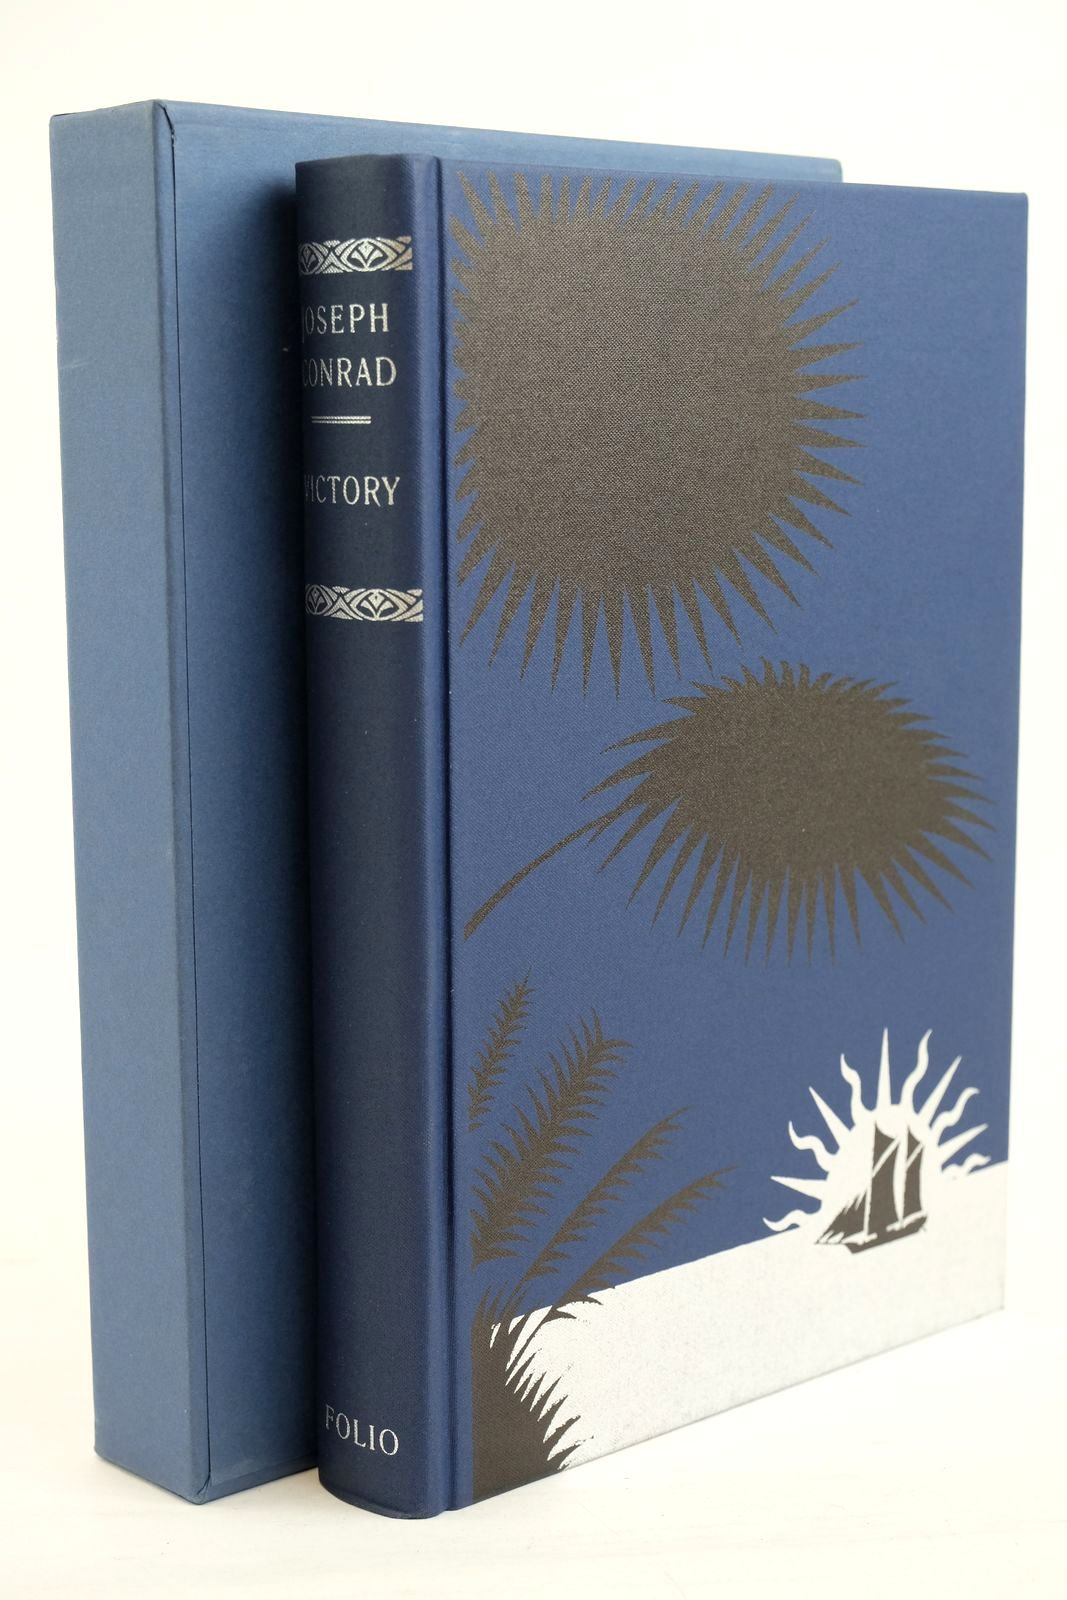 Photo of VICTORY AN ISLAND TALE written by Conrad, Joseph Bron, Eleanor illustrated by Mosley, Francis published by Folio Society (STOCK CODE: 1320395)  for sale by Stella & Rose's Books